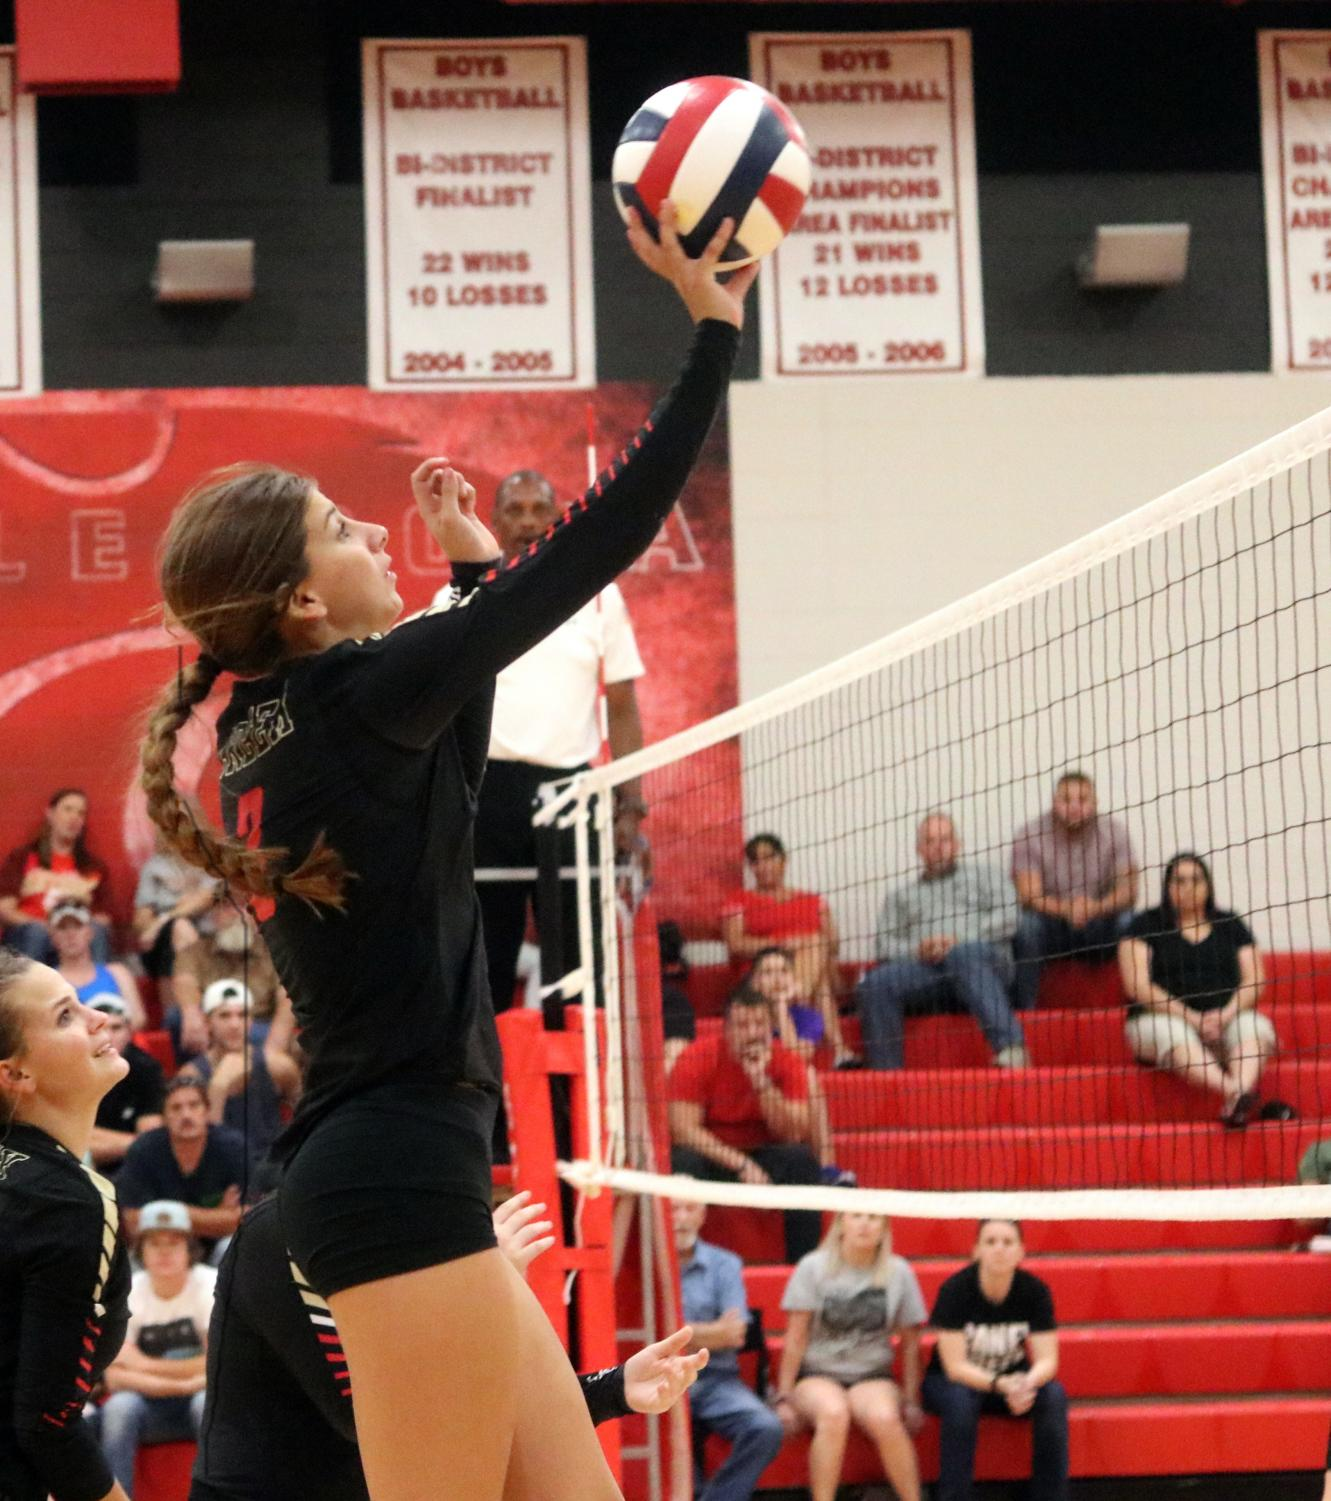 Varsity captain Blakely Niles blovks the volleyball from hitting the floor on the Panther's side of the net. Volleyball ended their season last week.